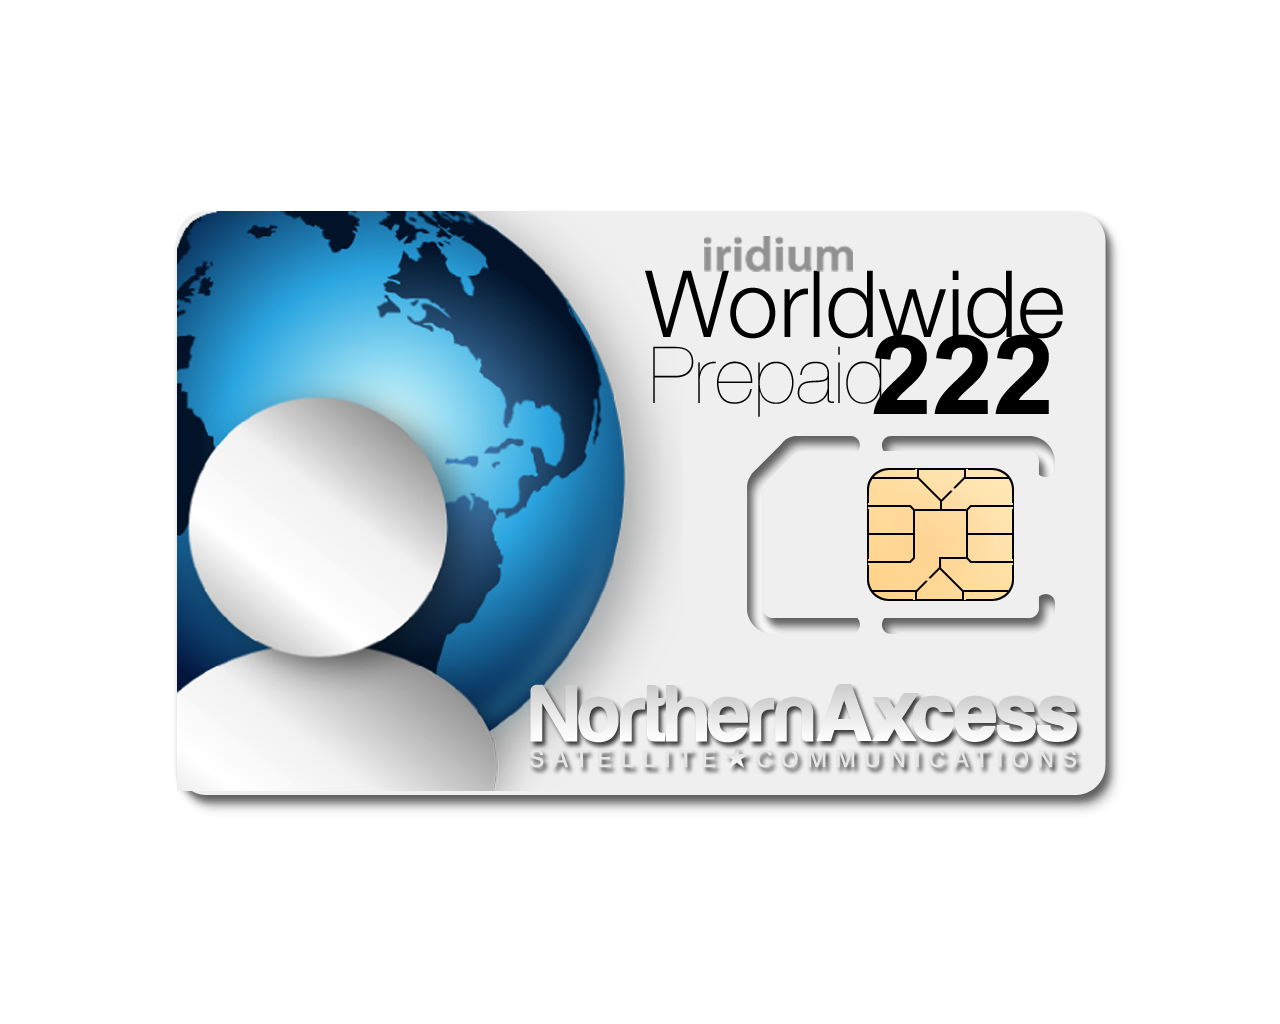 iridium 222 Global Sim card (Soon to be Discontinued)